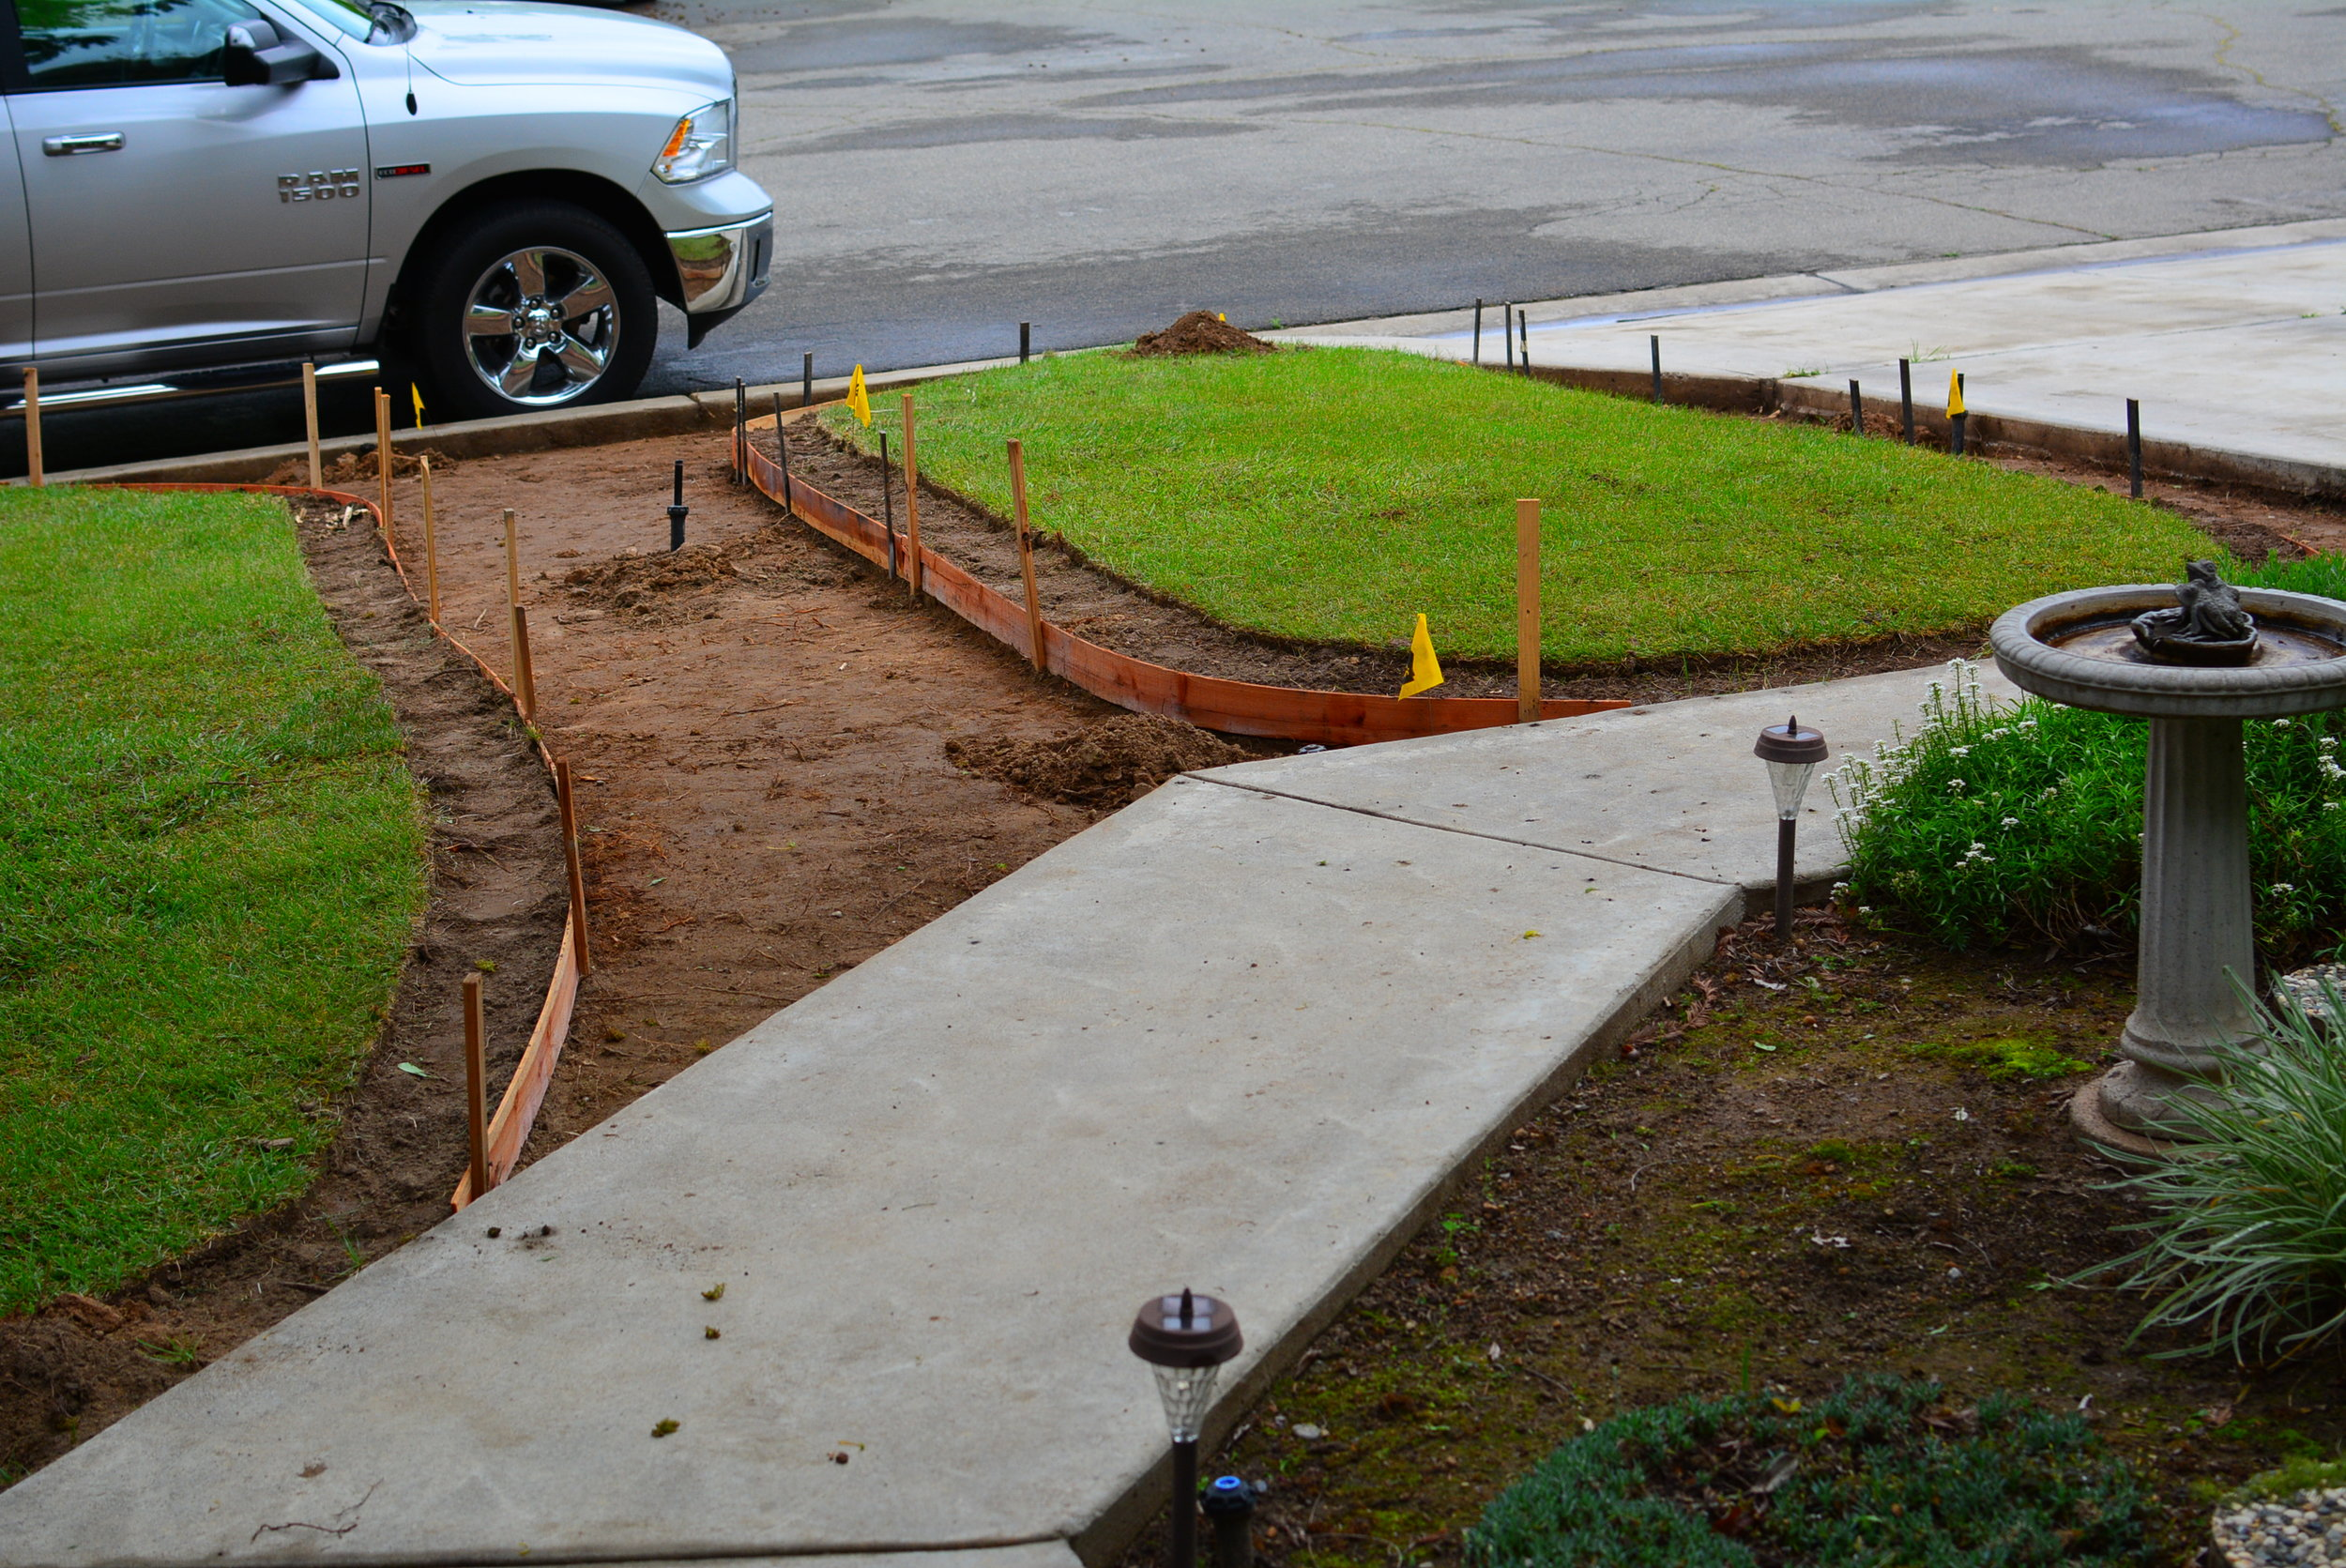 4/13/17- Sod removal & subgrade preparation